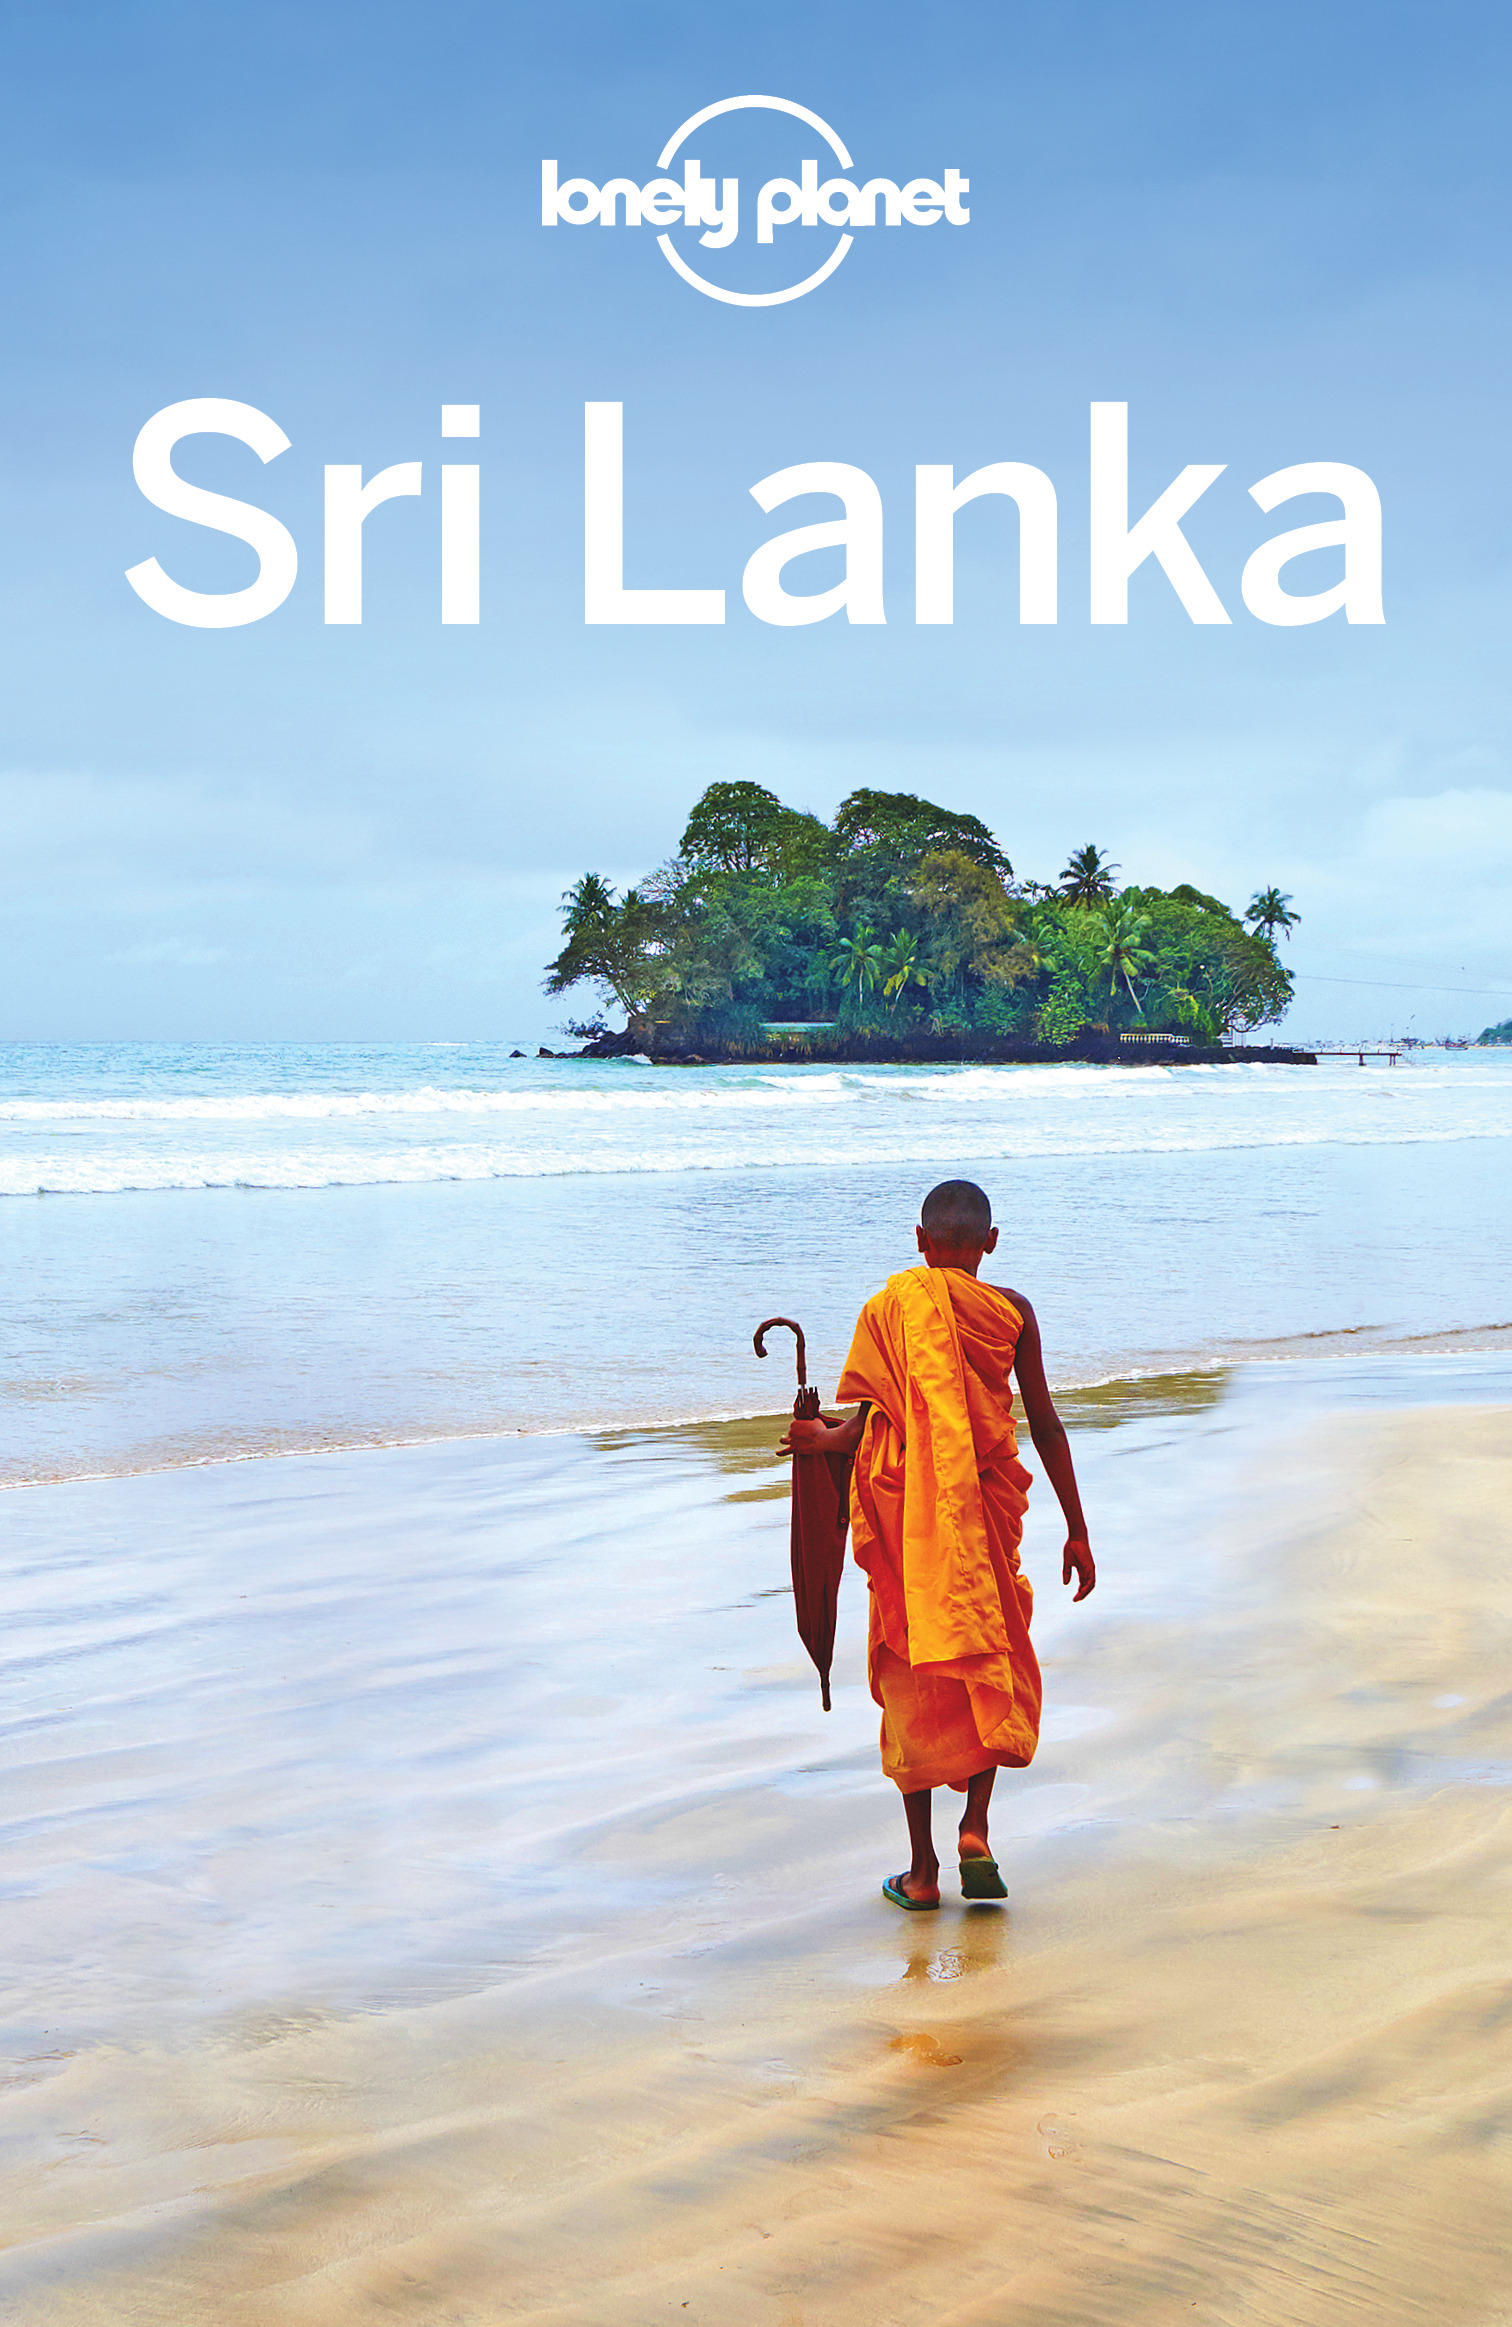 Berkmoes, Ryan Ver - Lonely Planet Sri Lanka, ebook